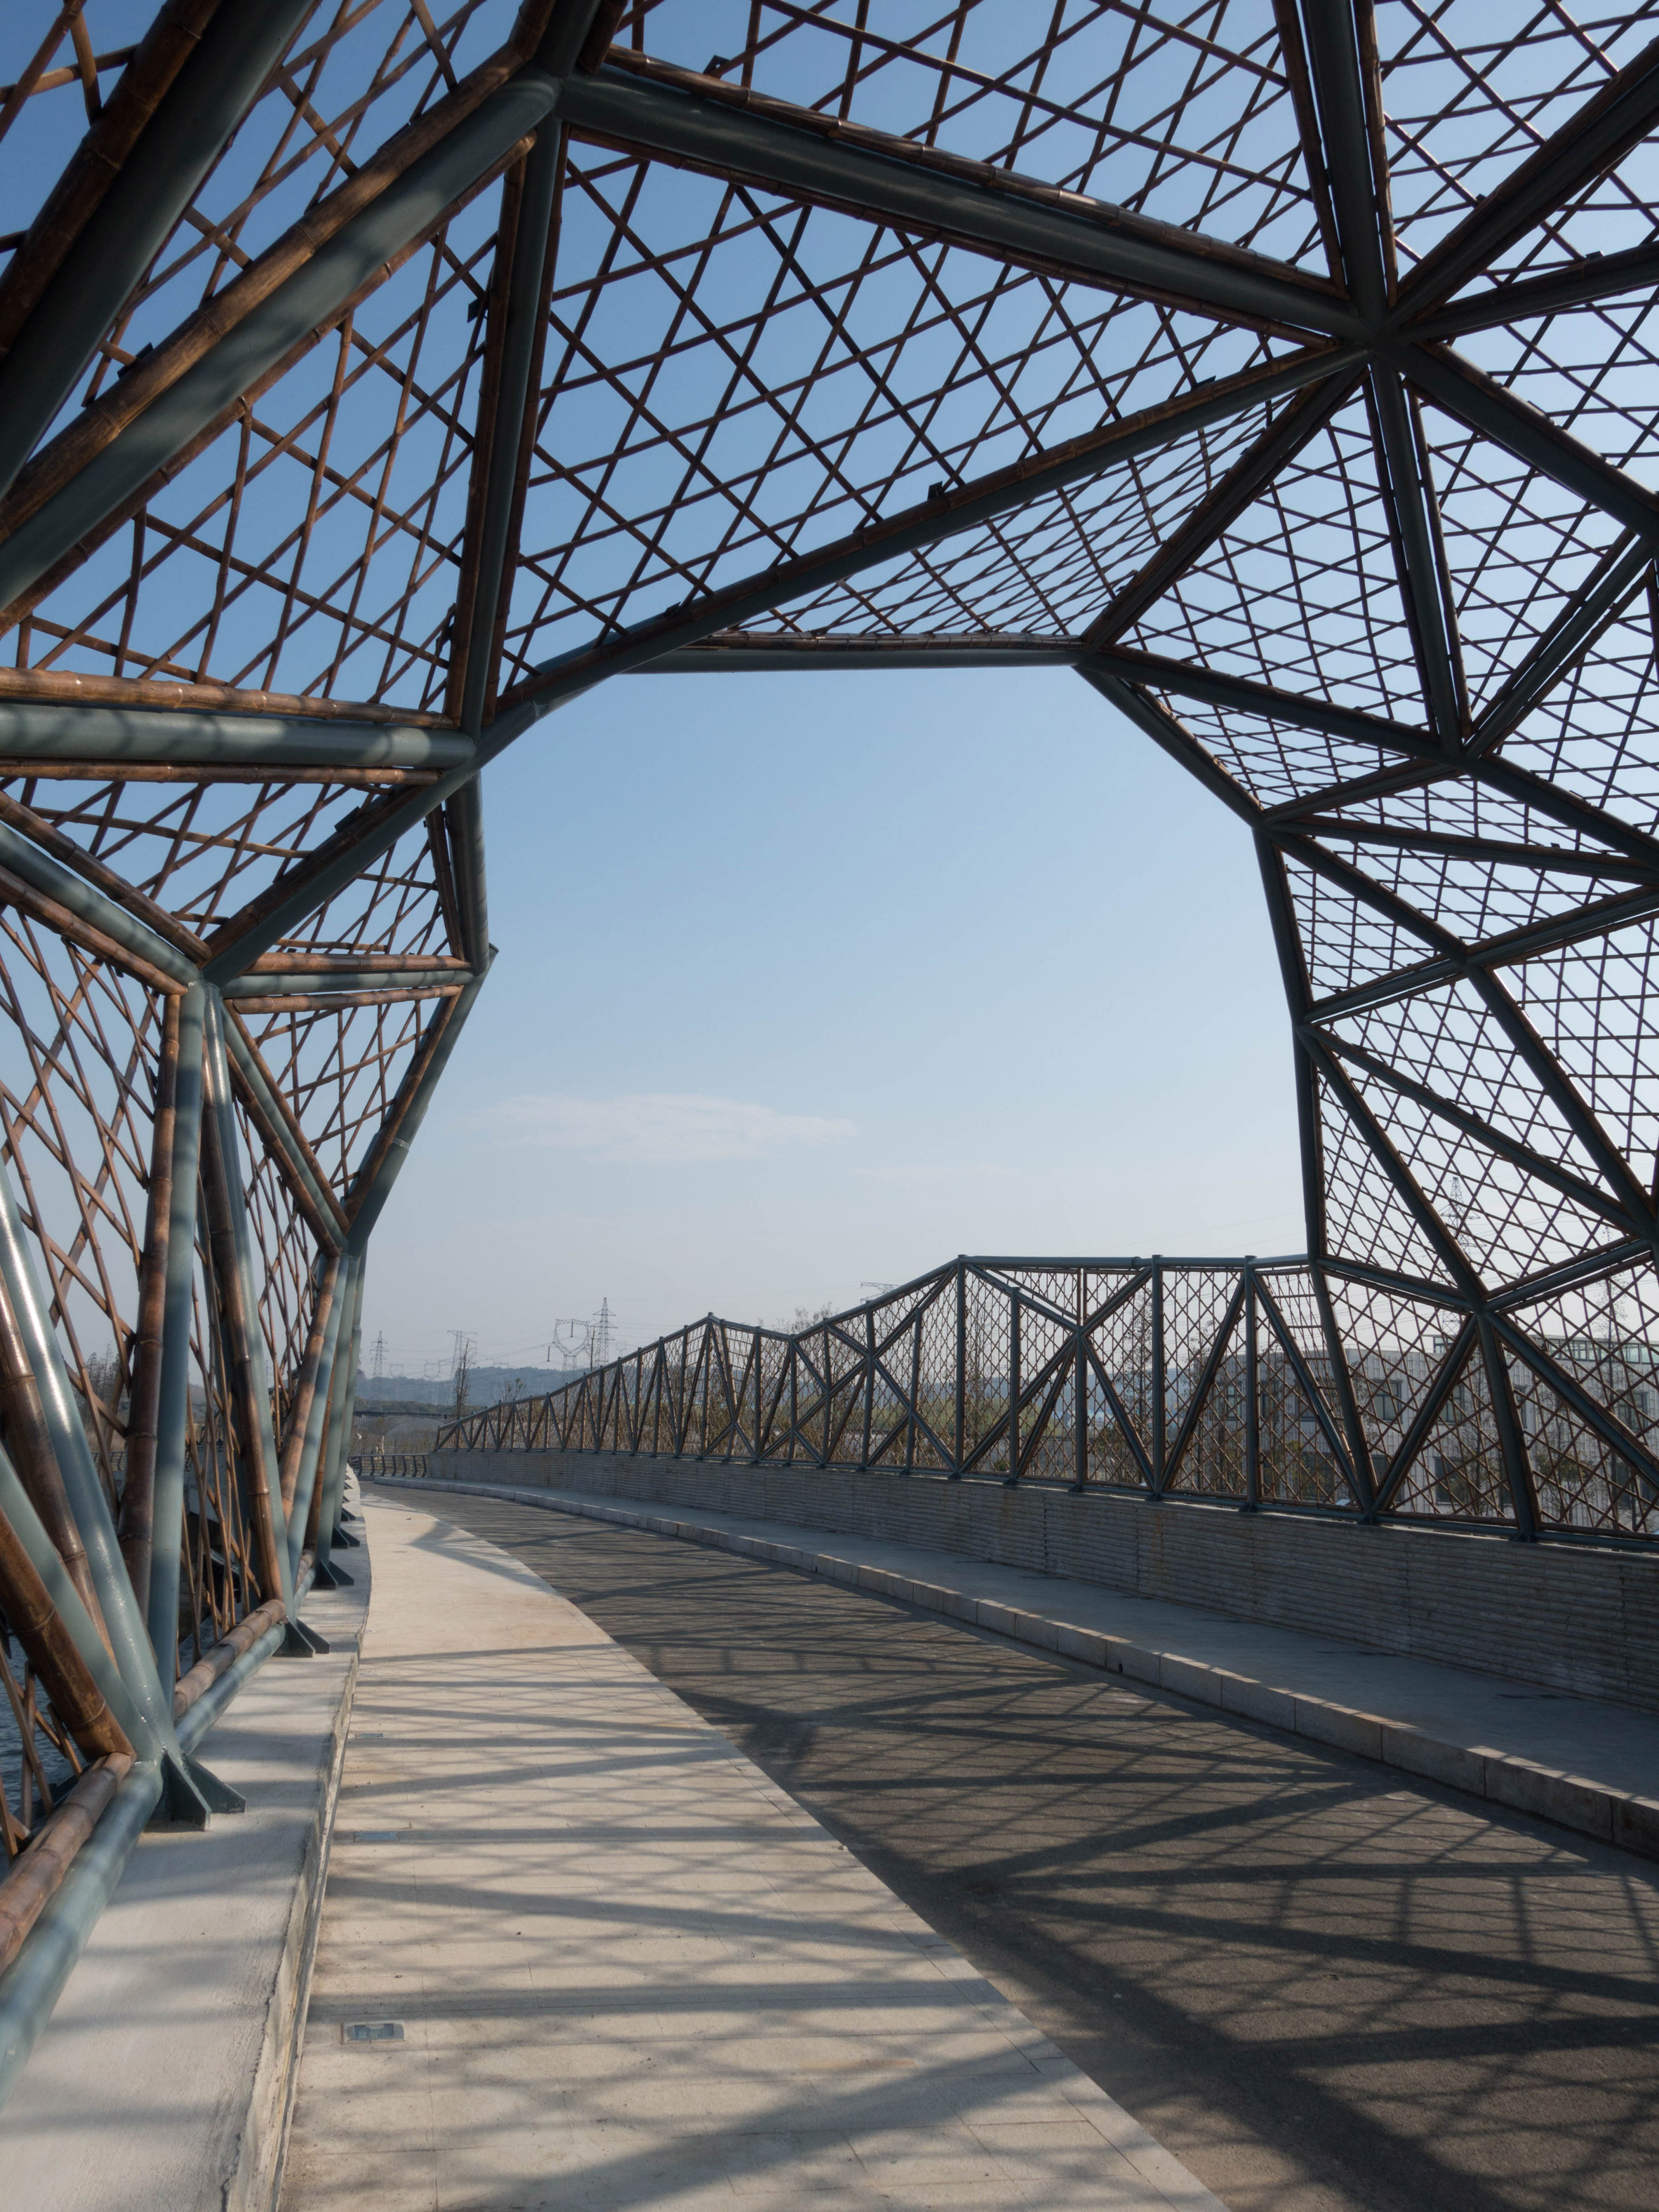 Latticed-bamboo bridge by Mimesis Architecture Studio references Jiangsu's craft traditions